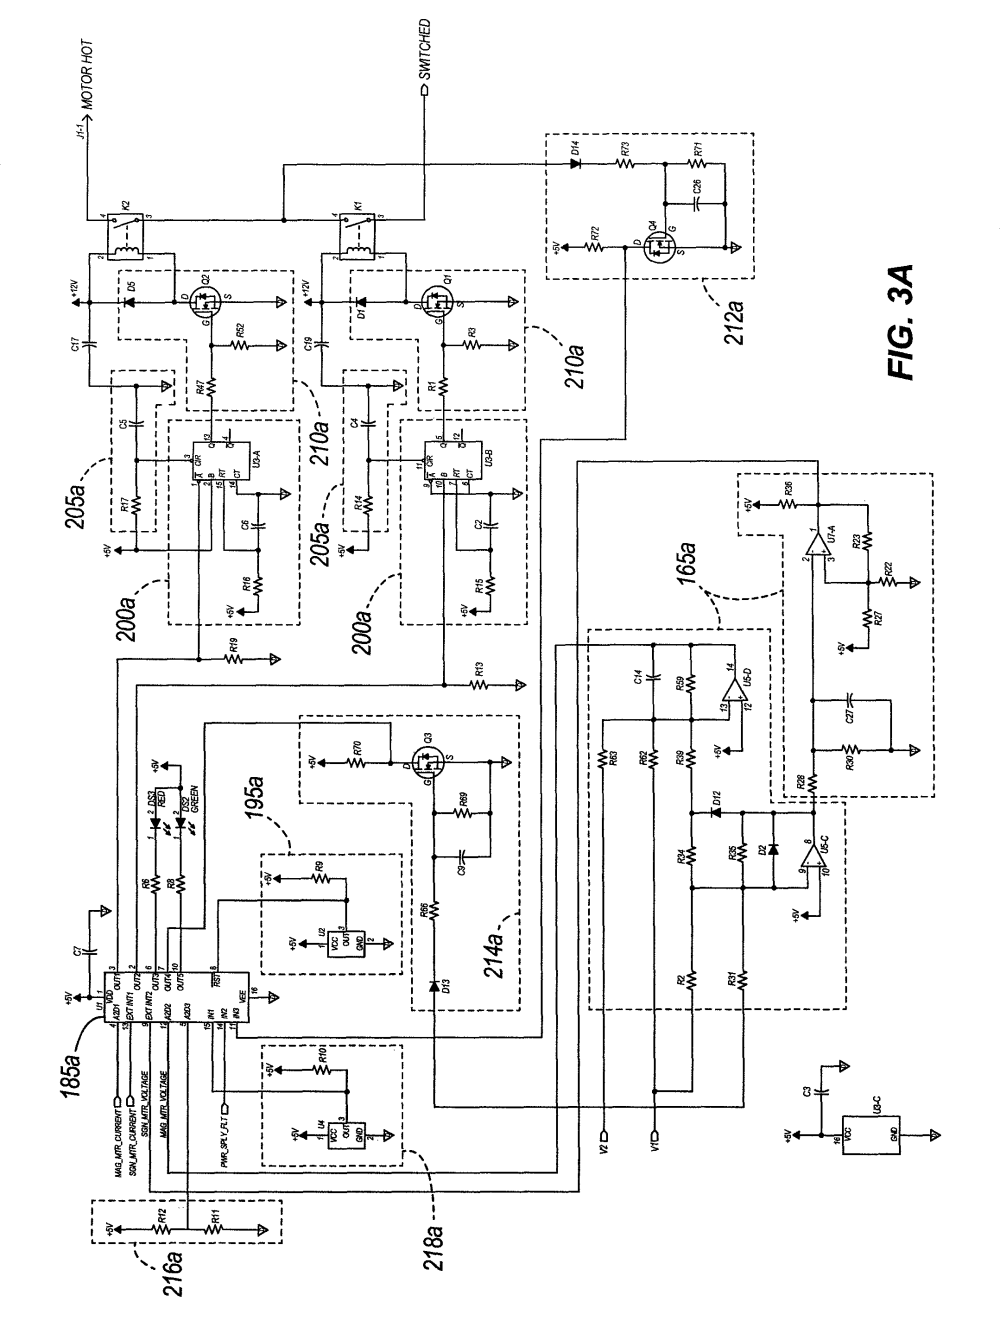 medium resolution of ingersoll wiring diagrams ingersoll free engine image ingersoll rand motor wiring diagram ingersoll rand t30 compressor